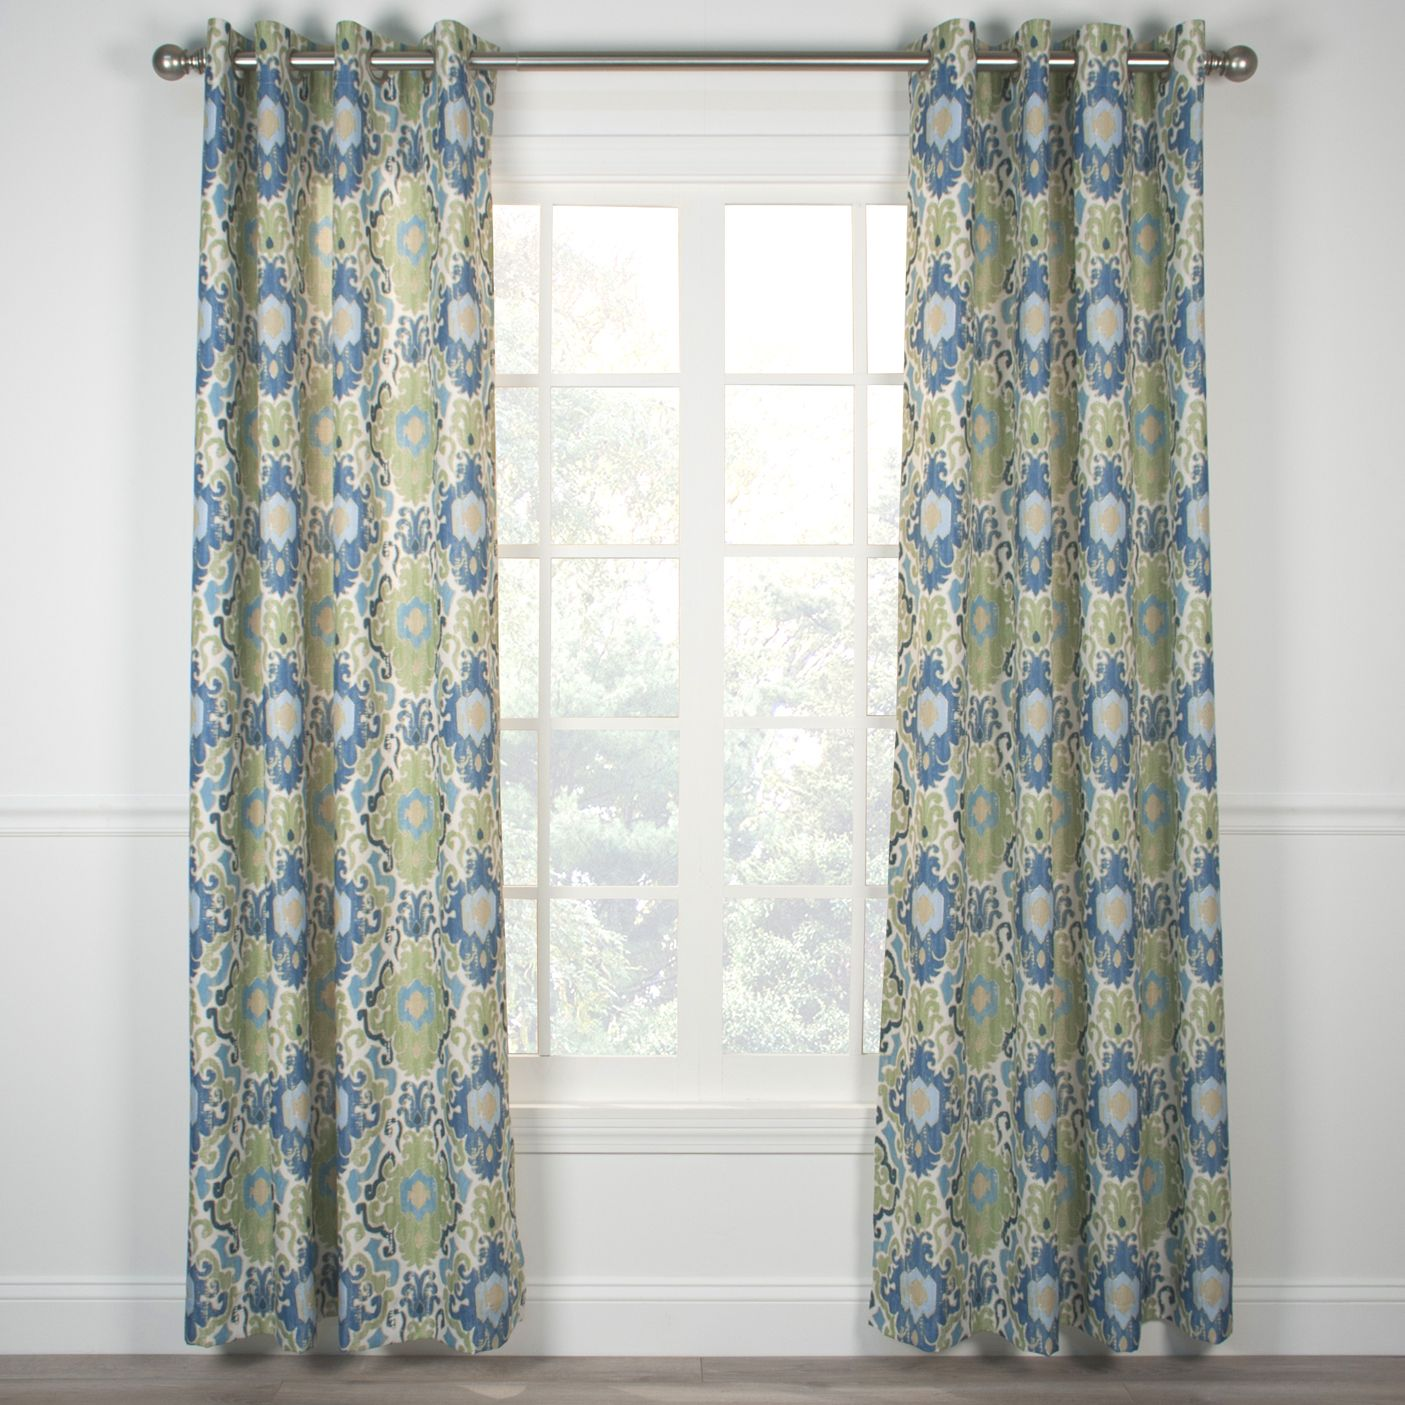 Captivating Tuscany Grommet Top Curtain Panel